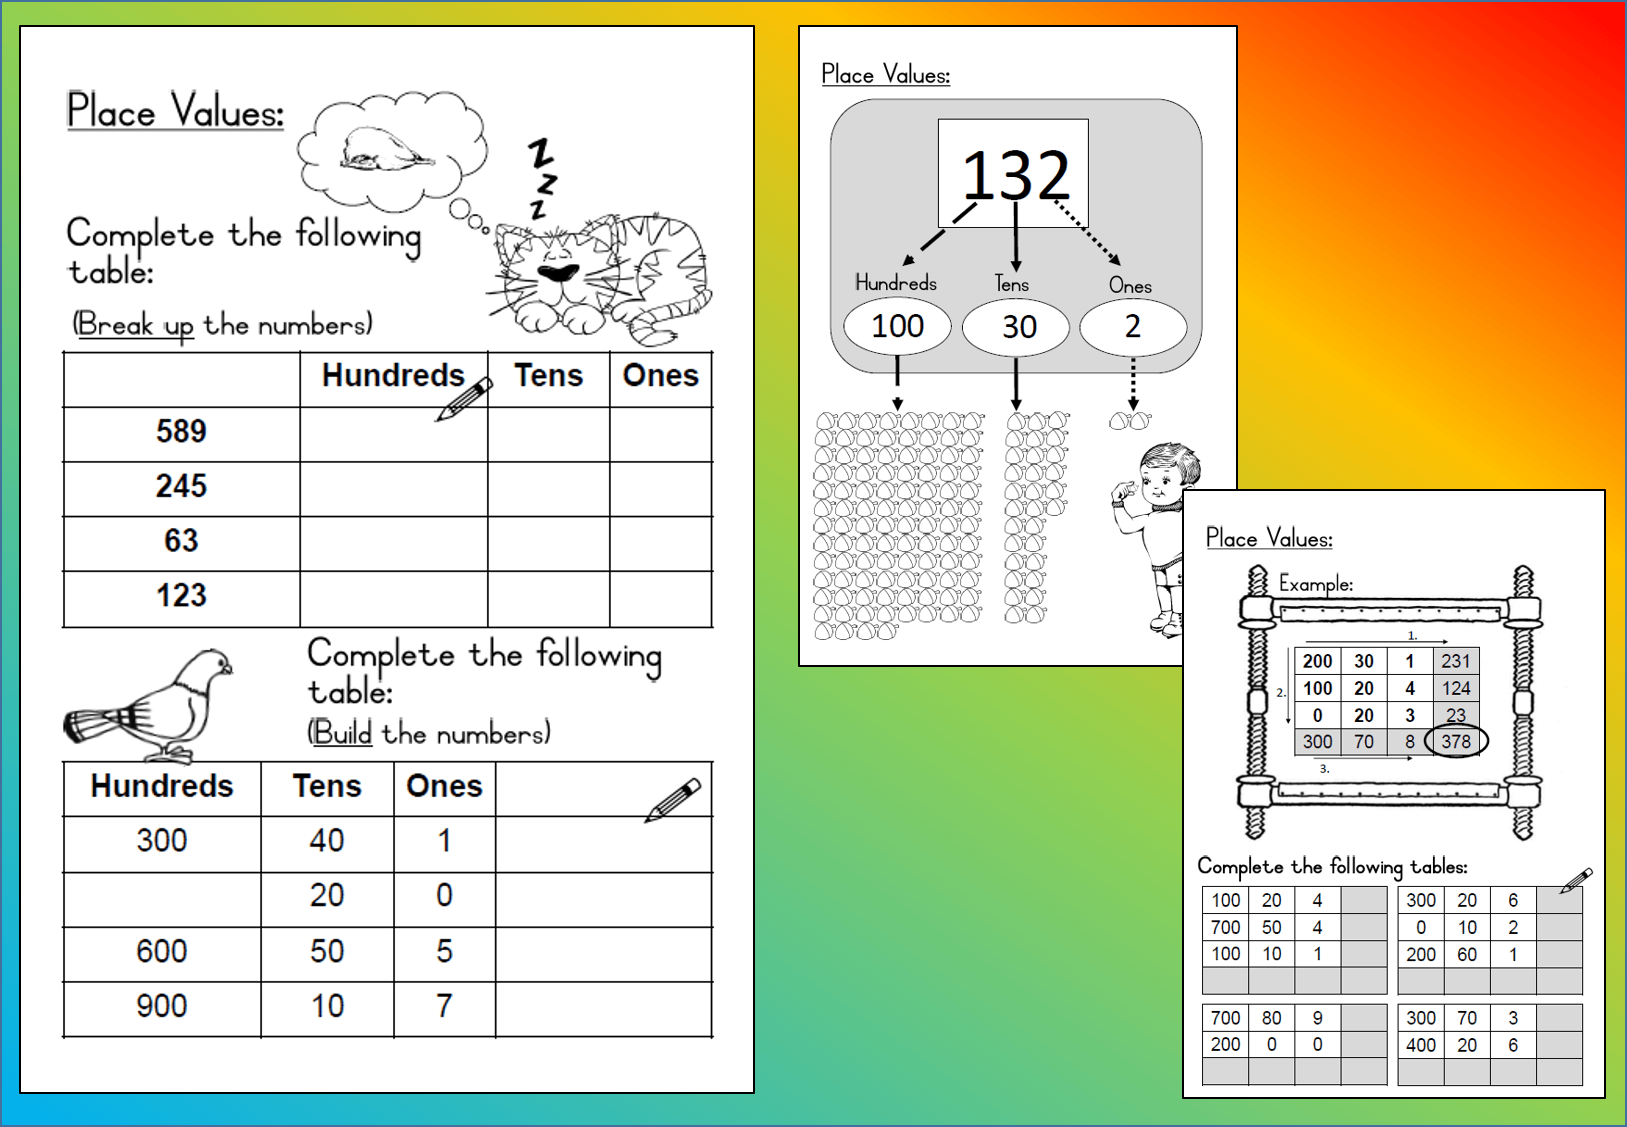 Mathematics Grade 3 Place Values Worksheet Teacha